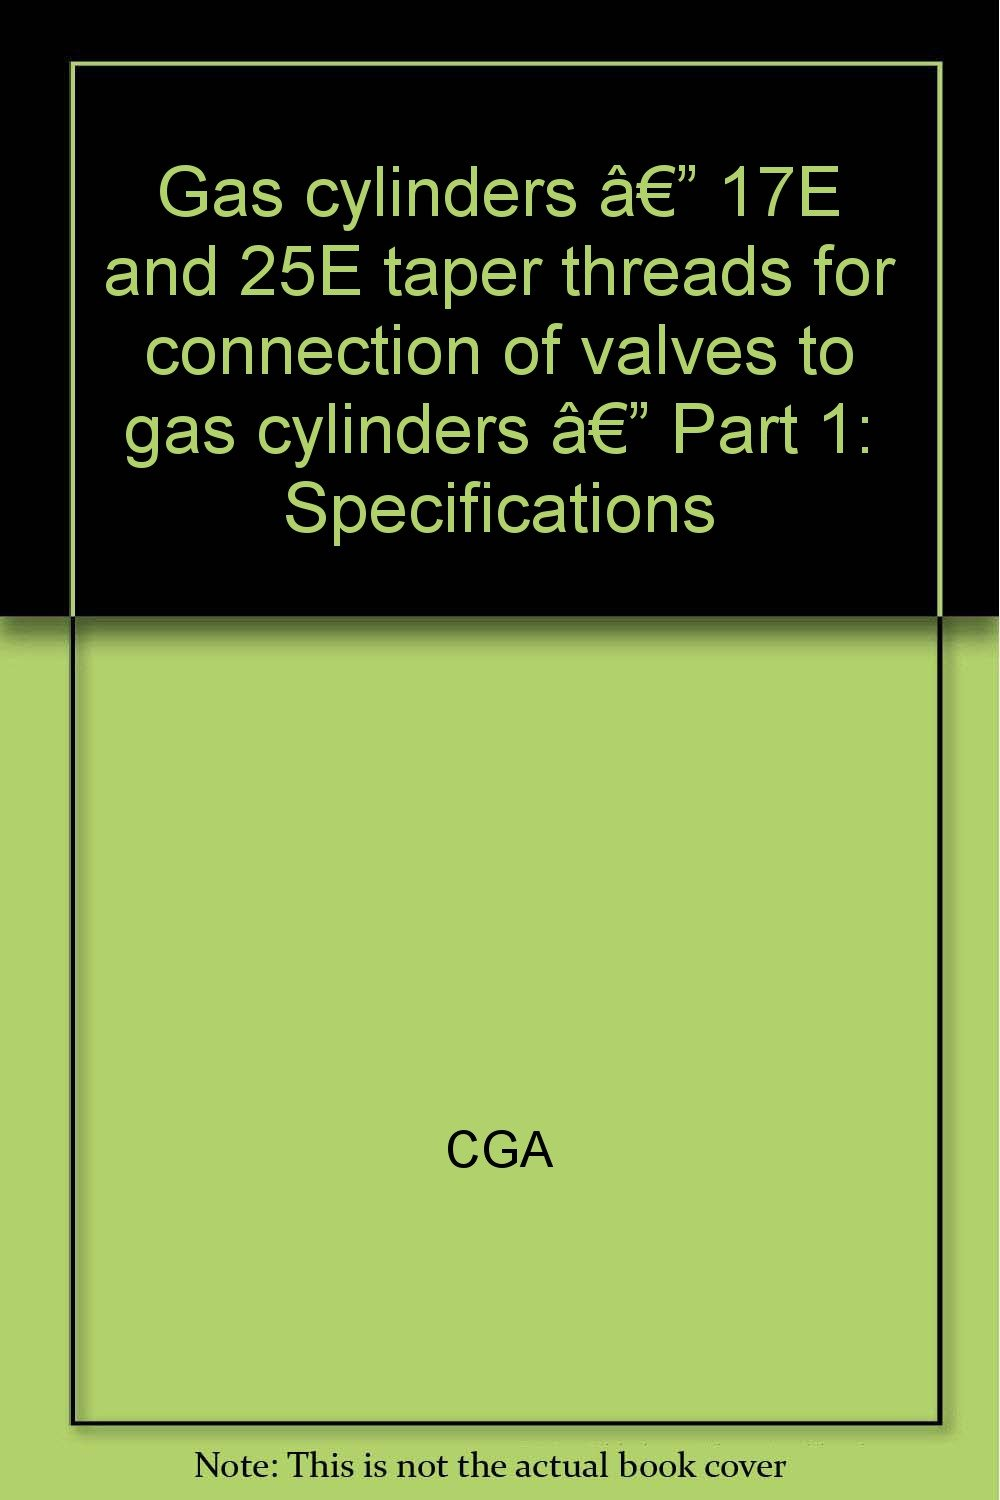 Gas cylinders — 17E and 25E taper threads for connection of valves to gas cylinders — Part 1: Specifications PDF